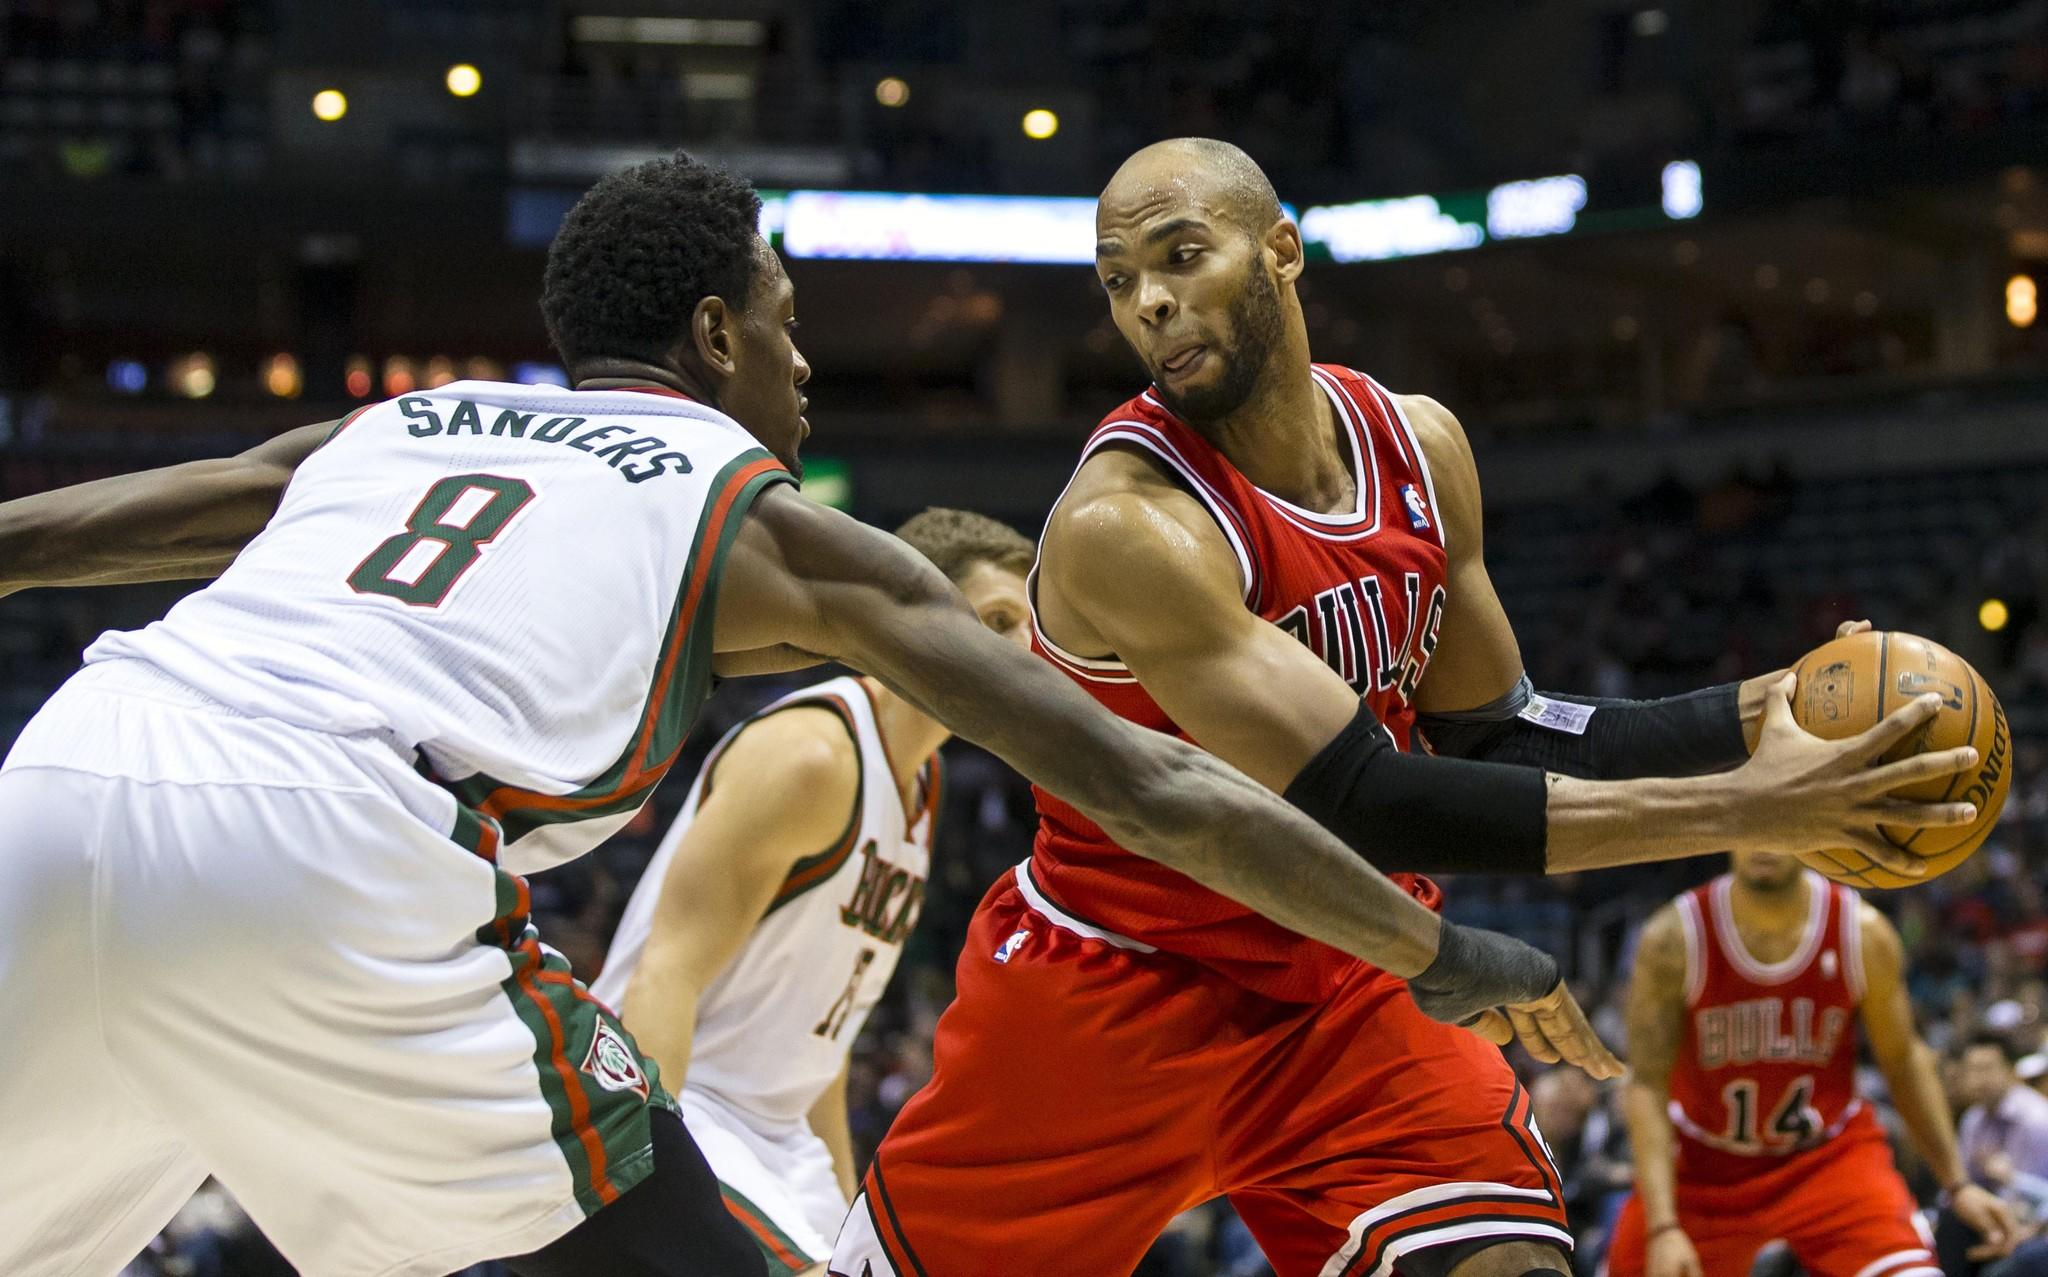 Bulls forward Taj Gibson gets ready to make a move on Bucks center Larry Sanders.